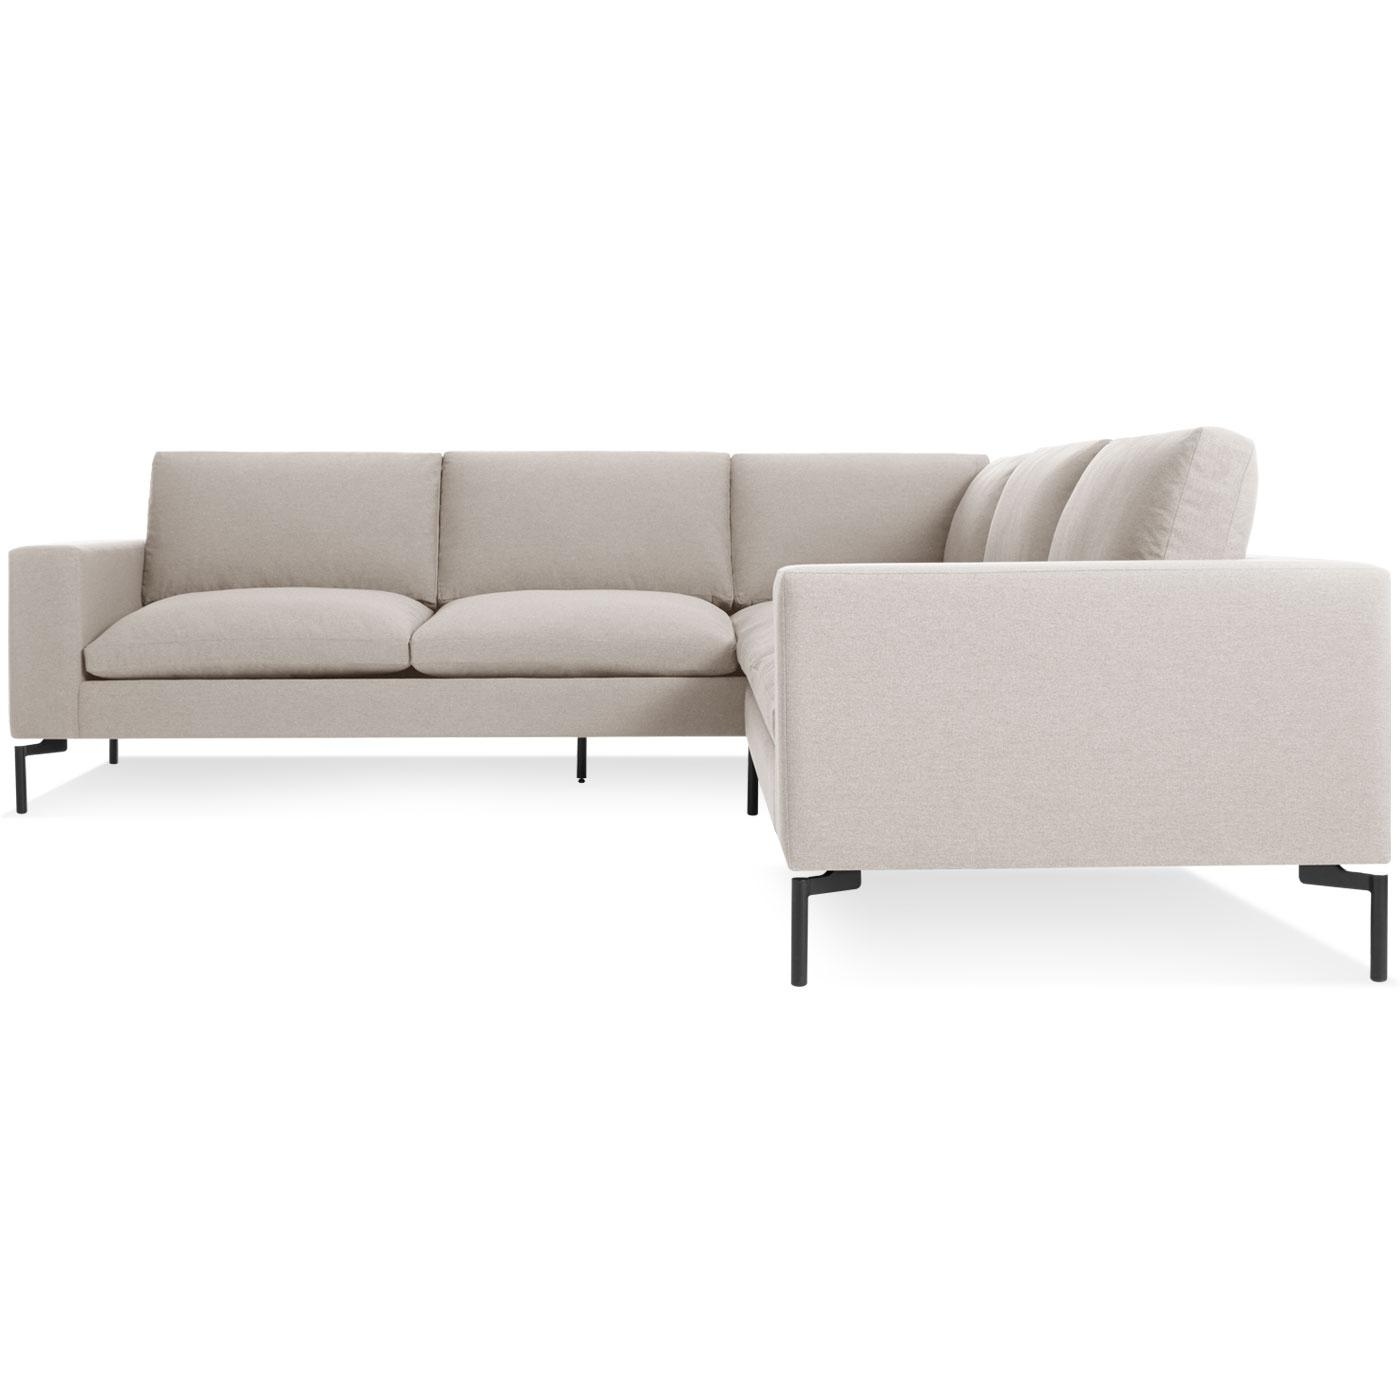 New Standard Small Sectional Sofa - Modern Sofas | Blu Dot within Modern Small Sectional Sofas